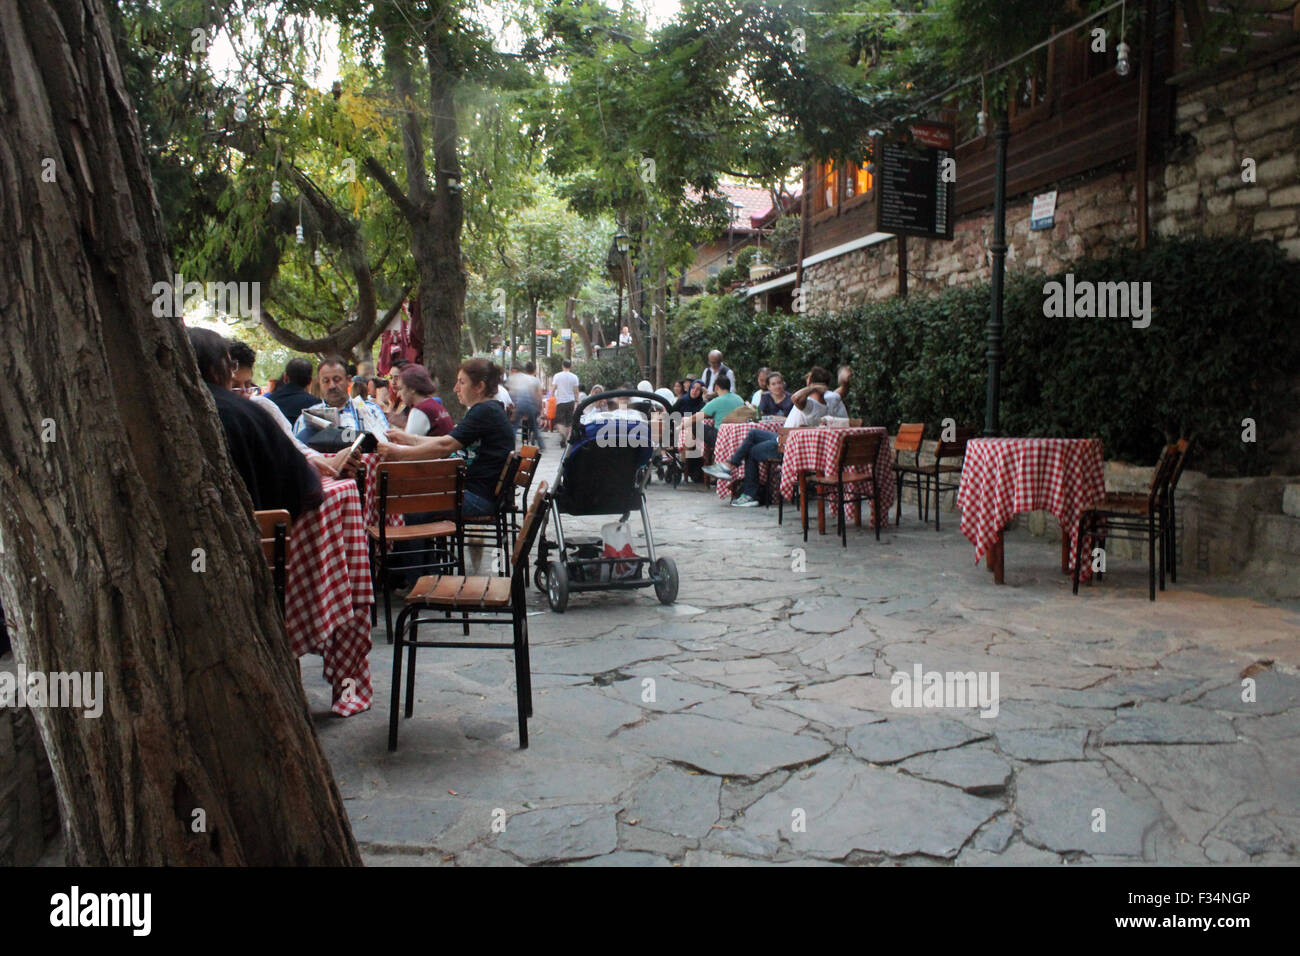 Istanbul, Turkey - September 21, 2015: Peoples are sitting in the cafe Istanbul's famous hill in Pierre Loti Stock Photo